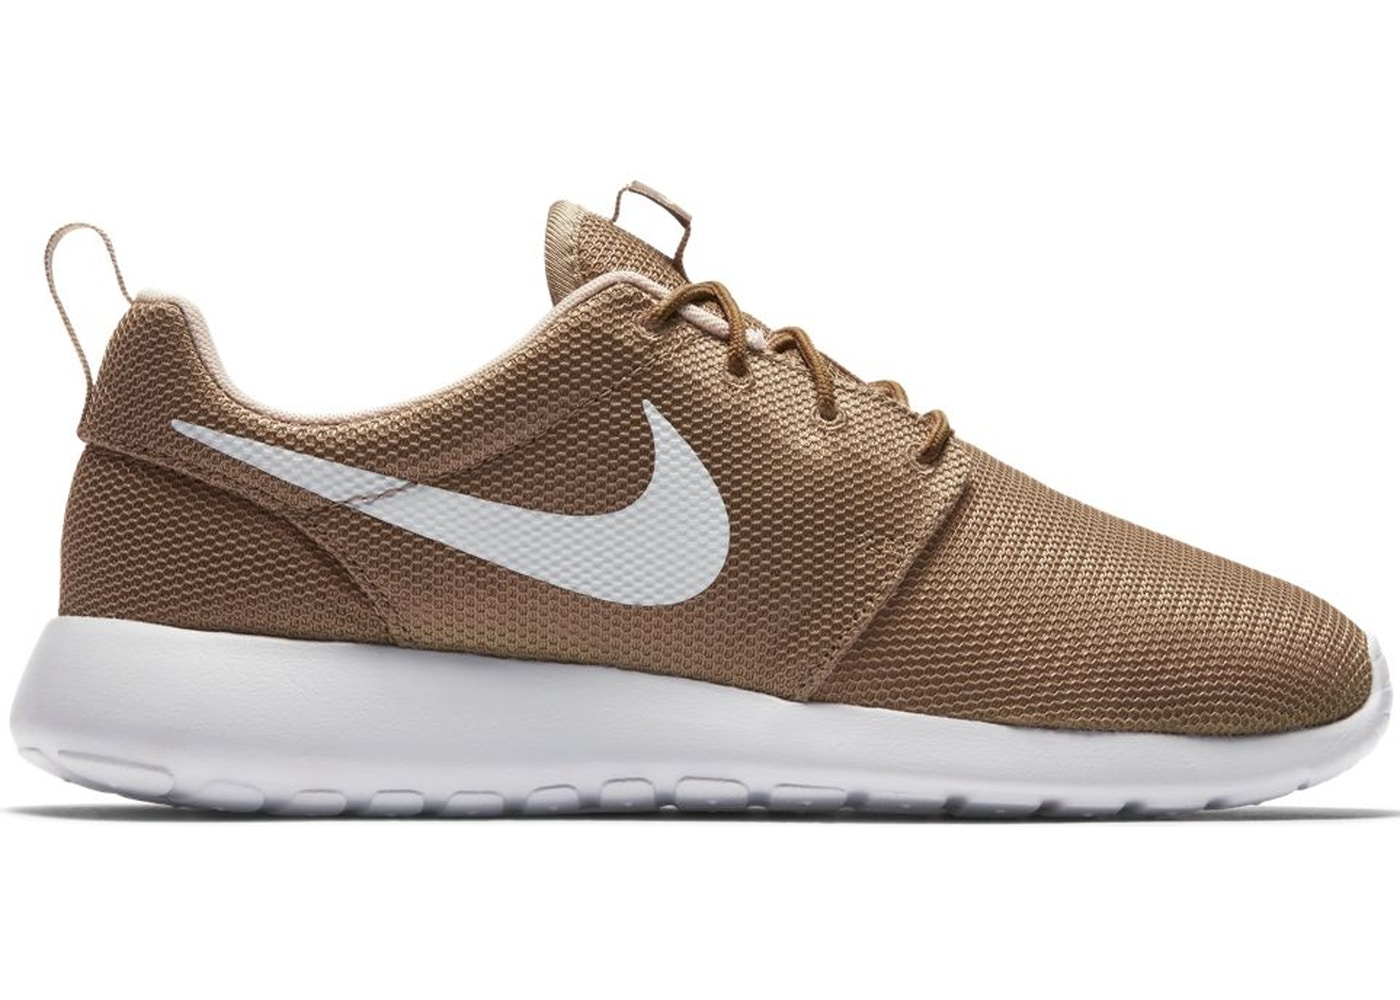 finest selection 4ca92 51da0 Sell. or Ask. Size  12. View All Bids. Nike Roshe One Khaki